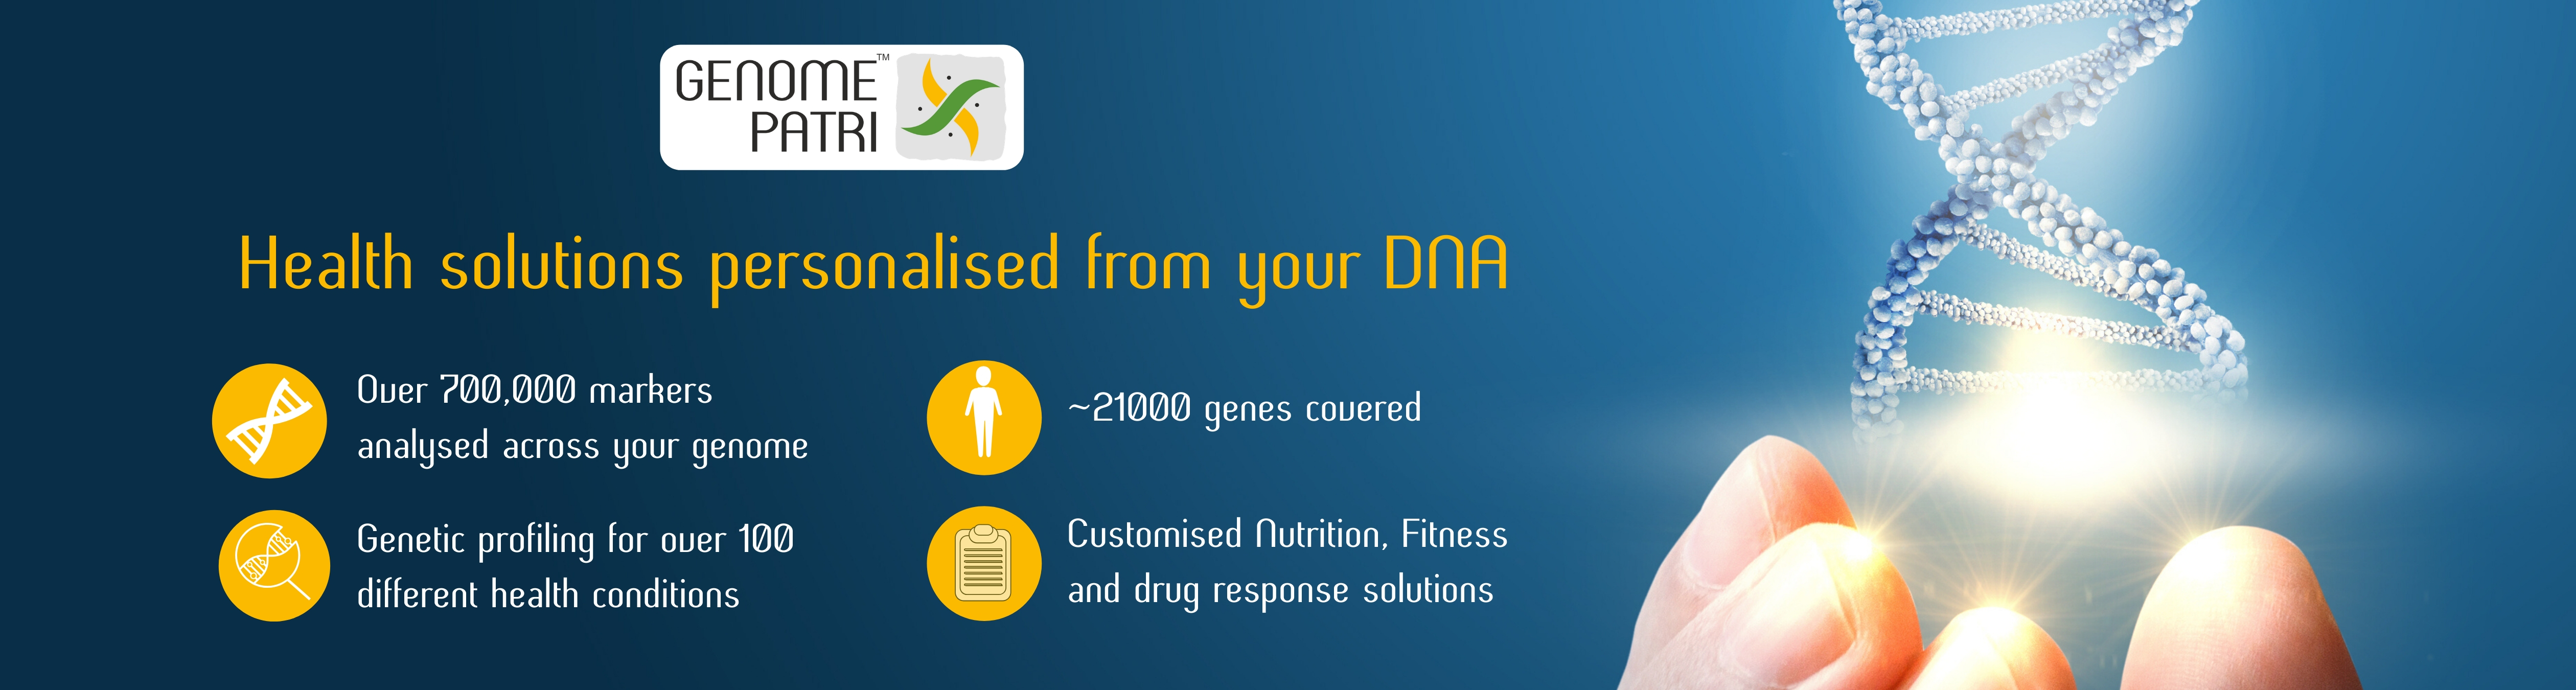 Genomepatri - Health & Wellness Genetic Test